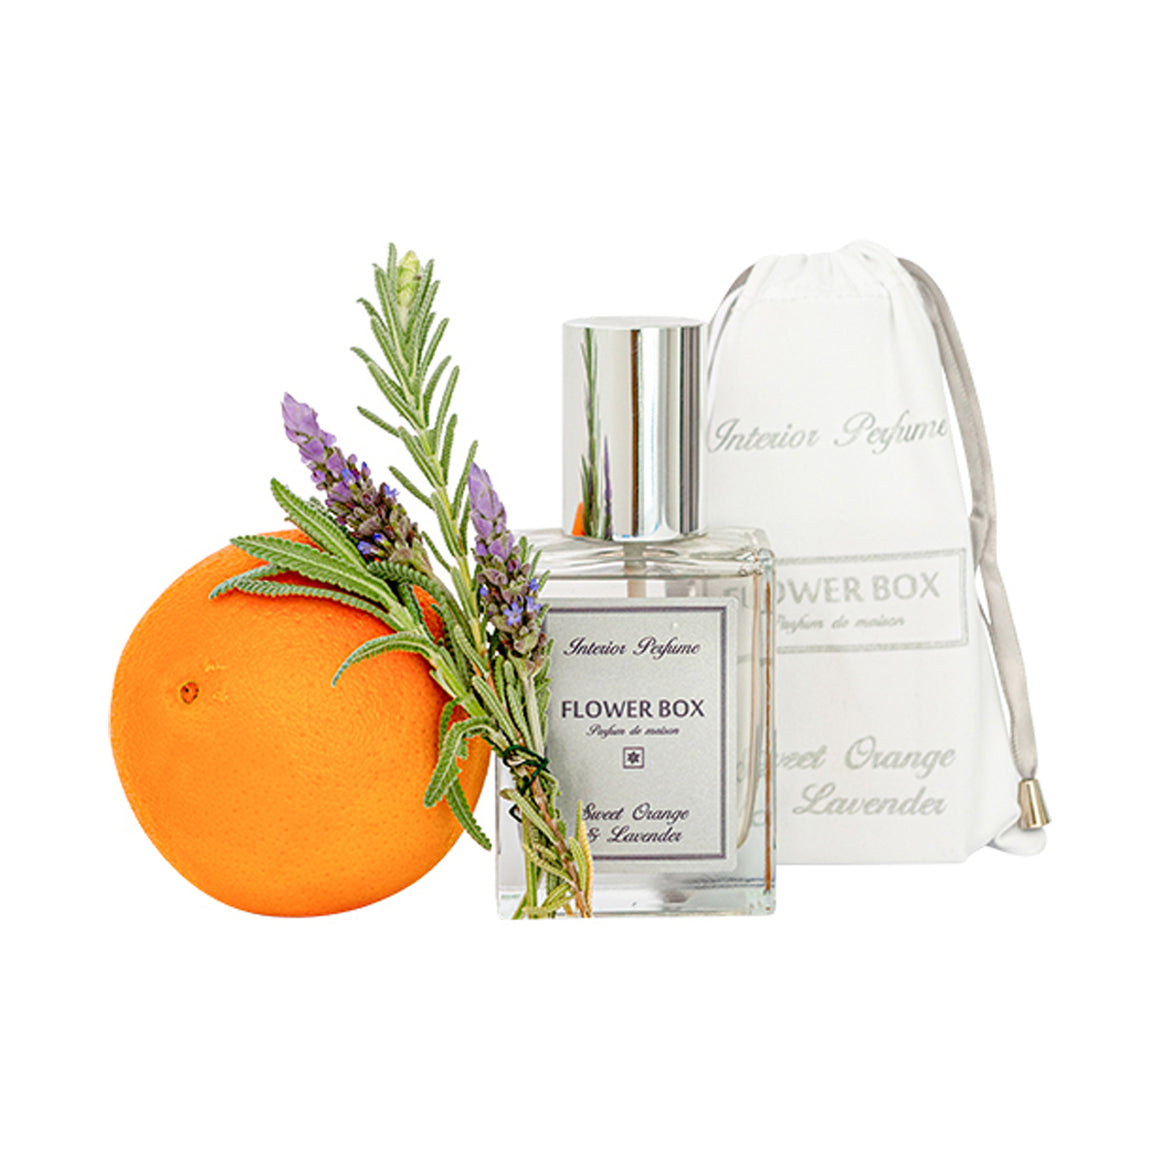 Flower Box - Interior Perfume Orange & Lavendefr